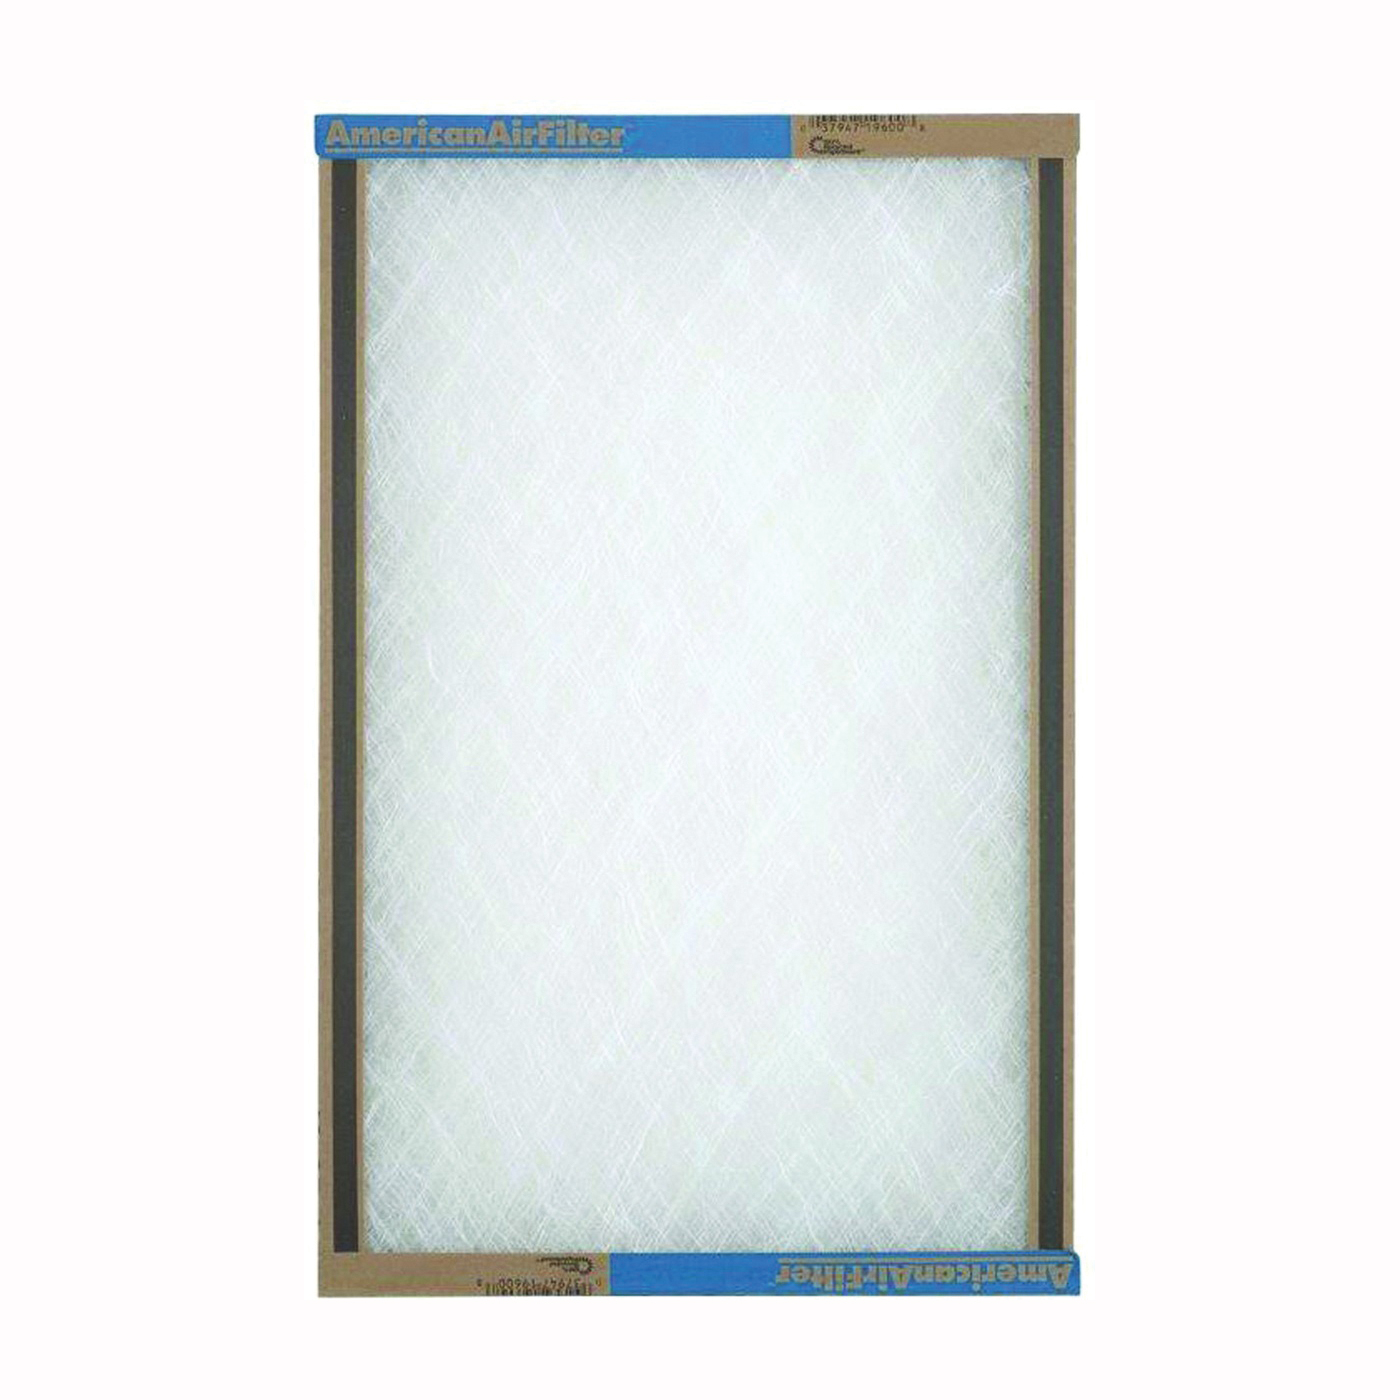 Picture of AAF 116241 Panel Filter, 24 in L, 16 in W, Chipboard Frame